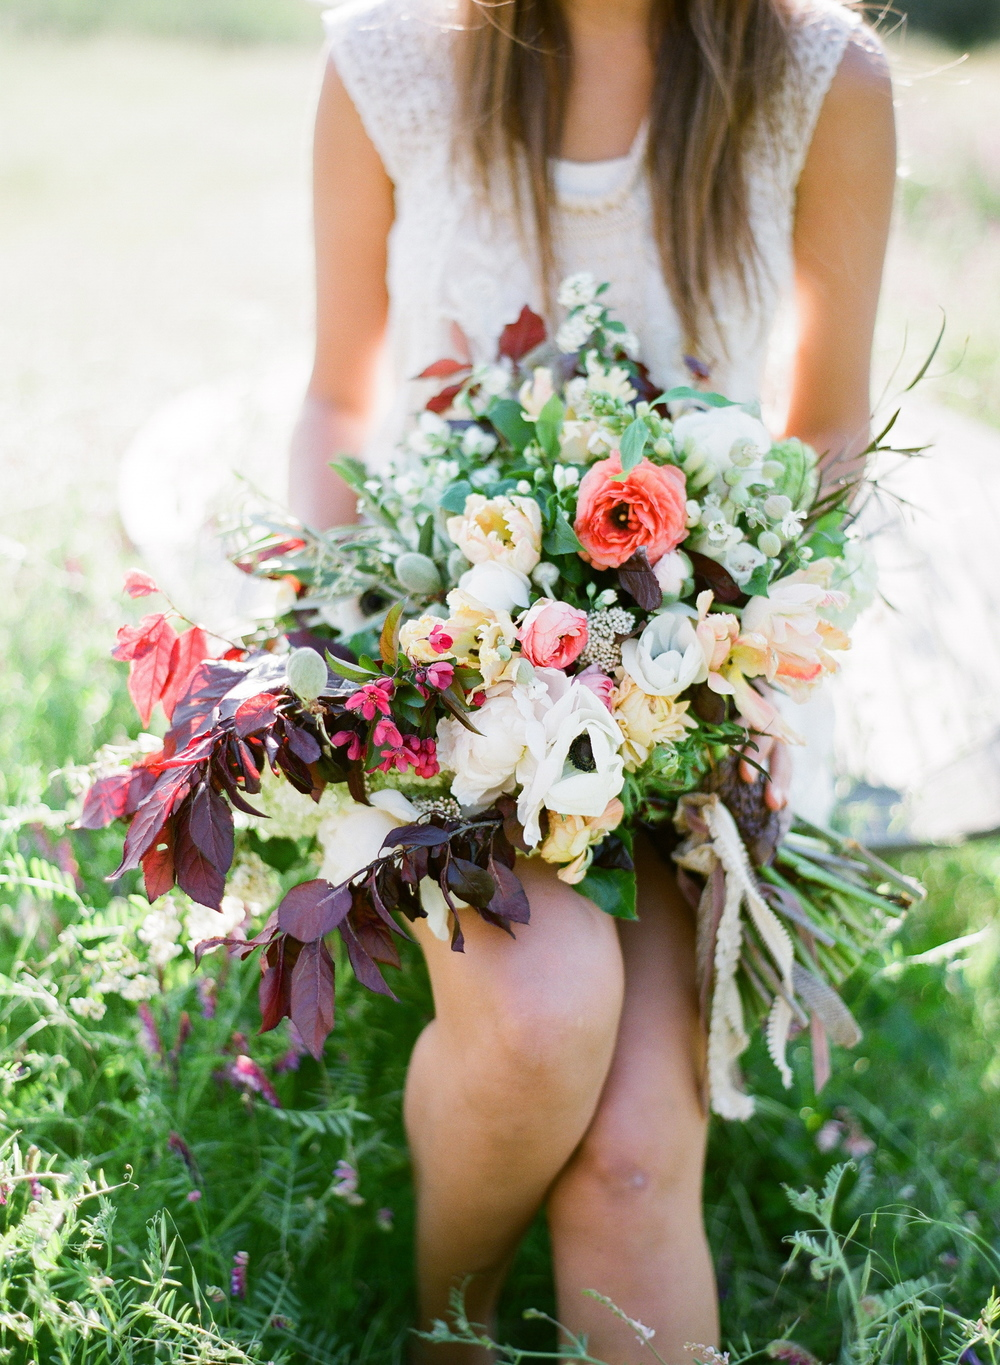 wild bouquet  / floral design by passion roots / jose villa photography / flower wild workshop